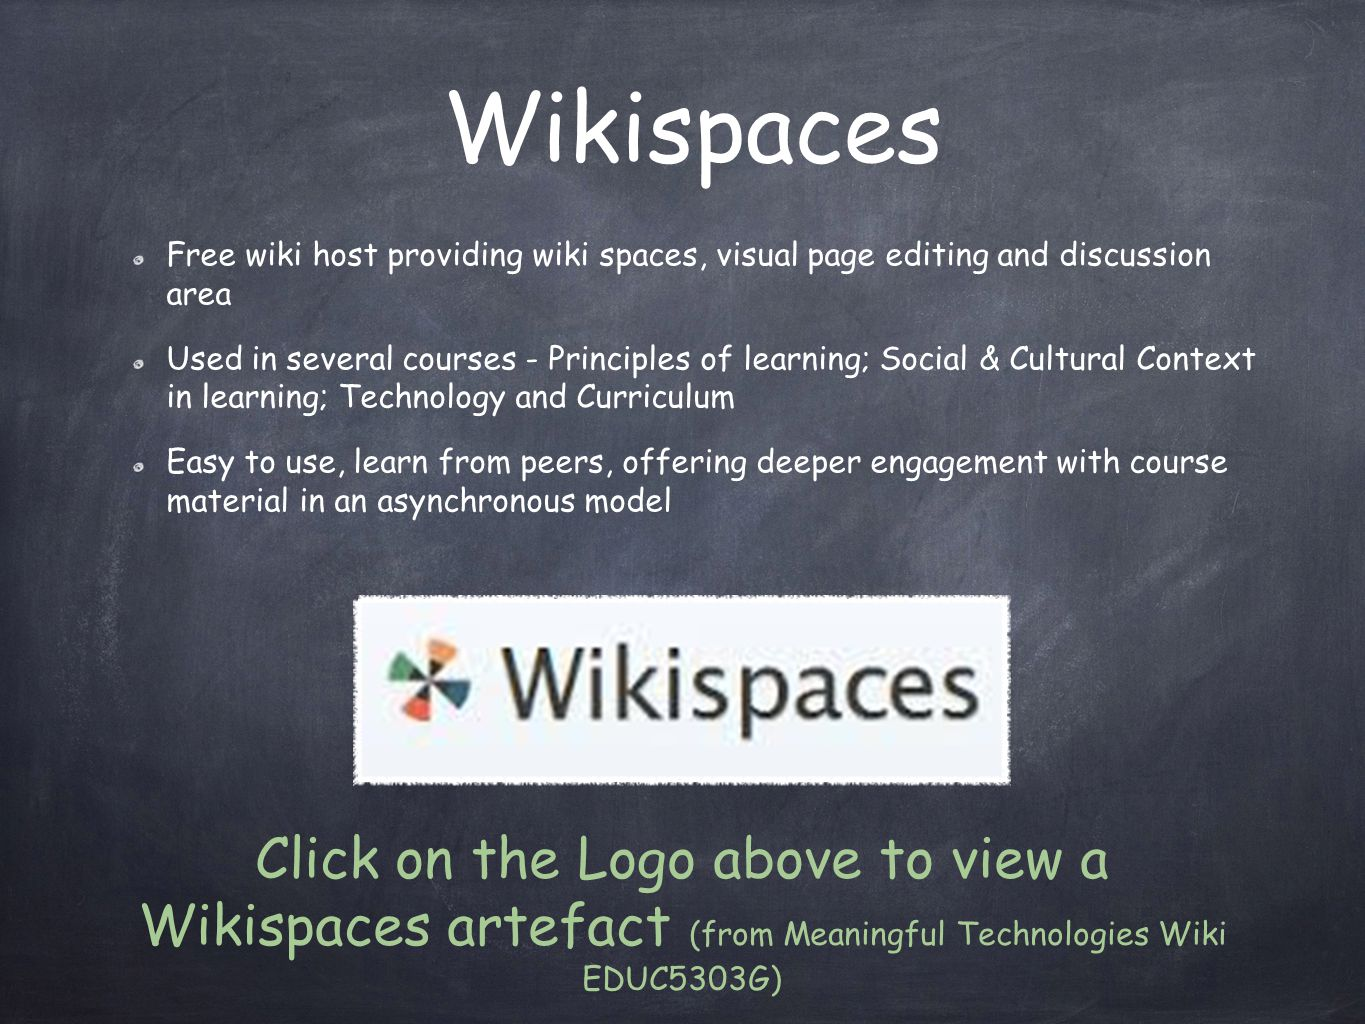 Wikispaces Free wiki host providing wiki spaces, visual page editing and discussion area Used in several courses - Principles of learning; Social & Cultural Context in learning; Technology and Curriculum Easy to use, learn from peers, offering deeper engagement with course material in an asynchronous model Click on the Logo above to view a Wikispaces artefact (from Meaningful Technologies Wiki EDUC5303G)